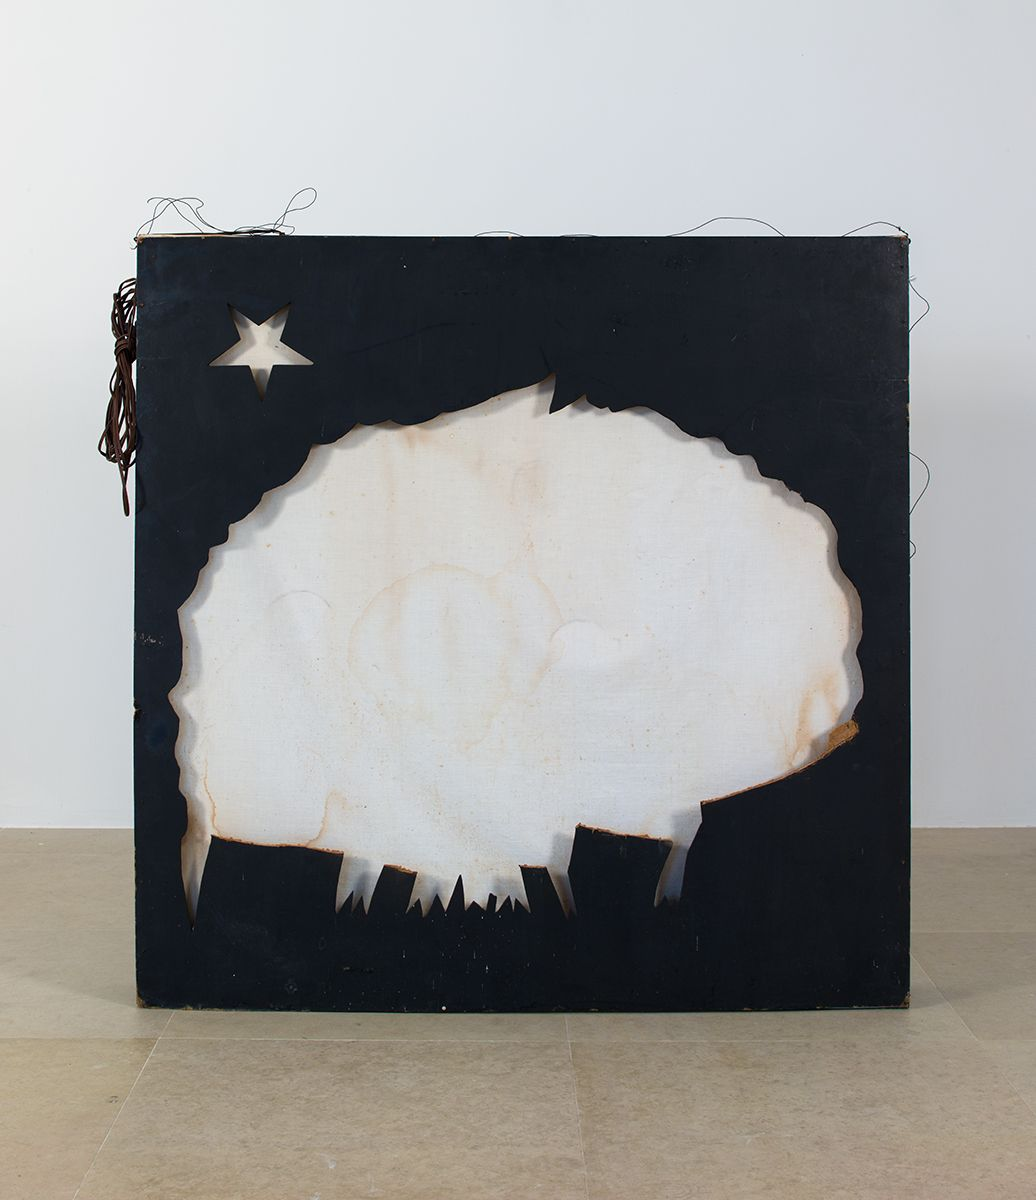 Gedi Sibony, First There Was This, 2013, Light box, 51 x 54 x 10 inches